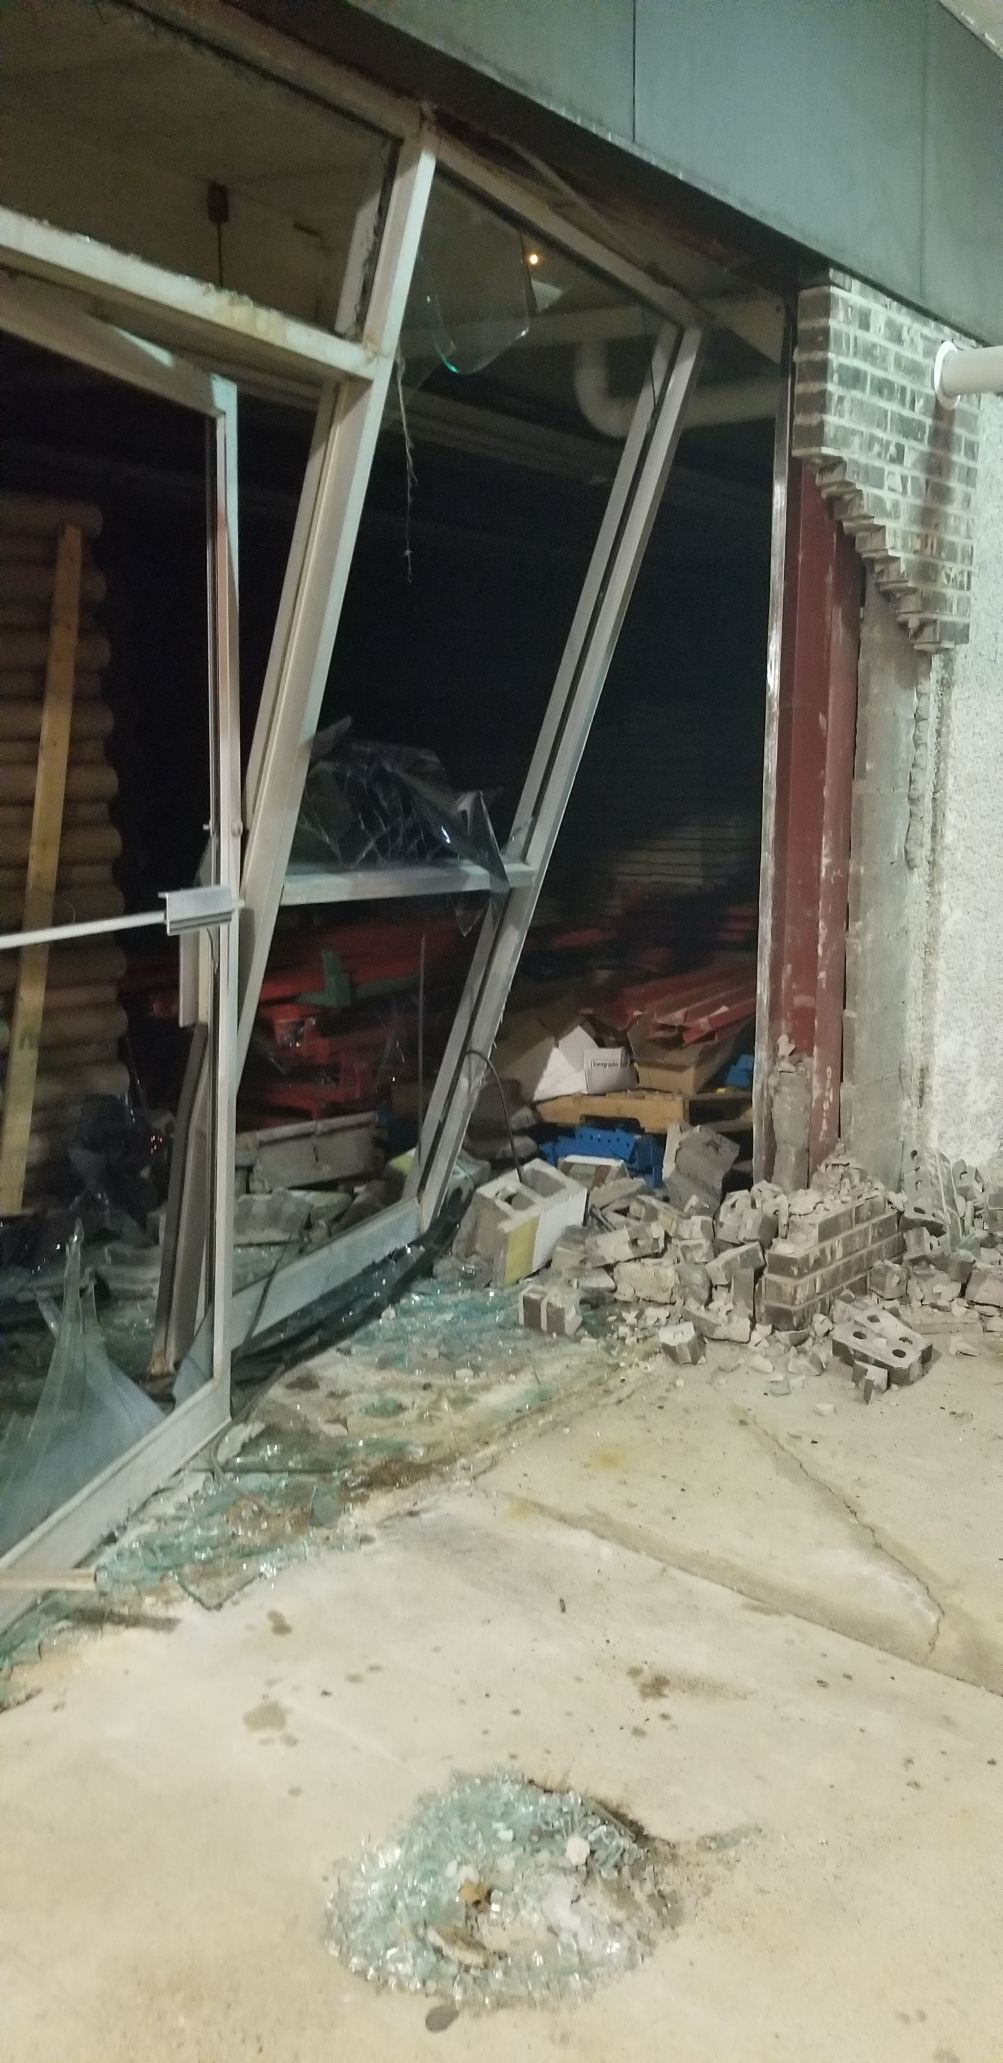 SW Wisconsin man faces charges after driving into building for 2nd time in 16 months